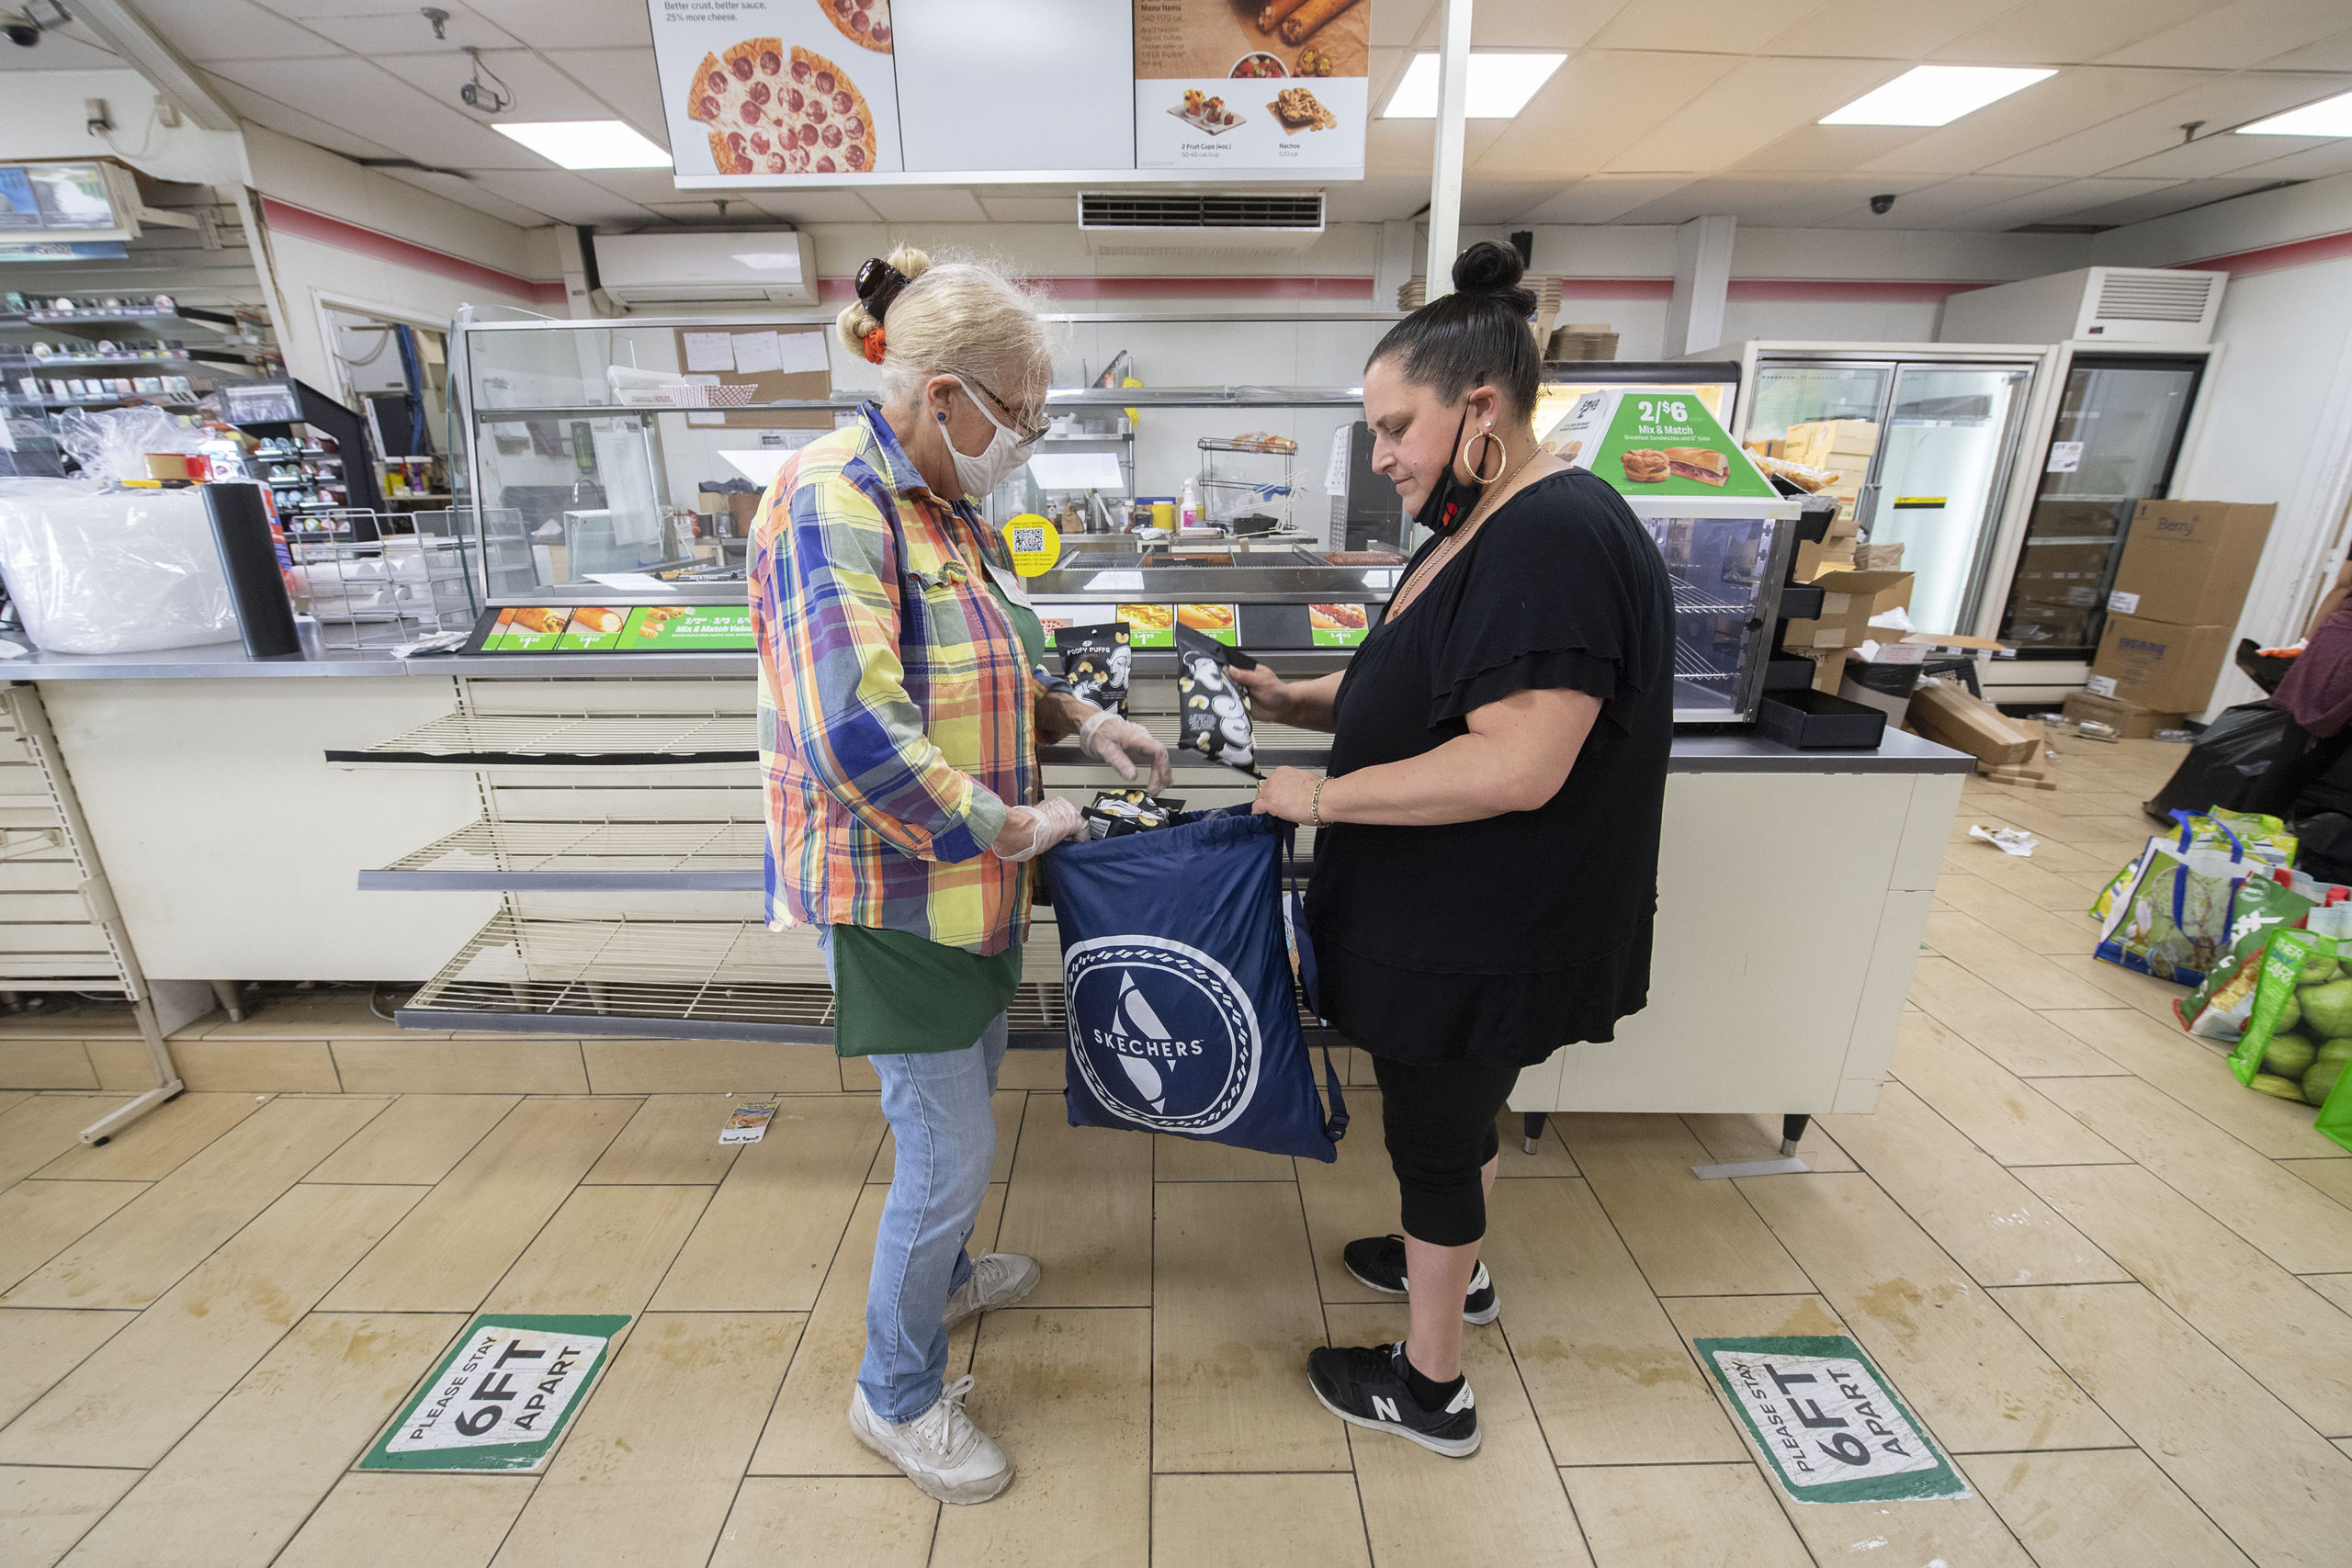 Sag Harbor Community Food Pantry volunteer Pam Kern is helped by 7-11 Store Manager Cynthia Williams as they remove food that was donated to the food pantry by 7-11 as the store was emptied and shut down on Friday. Michael Heller